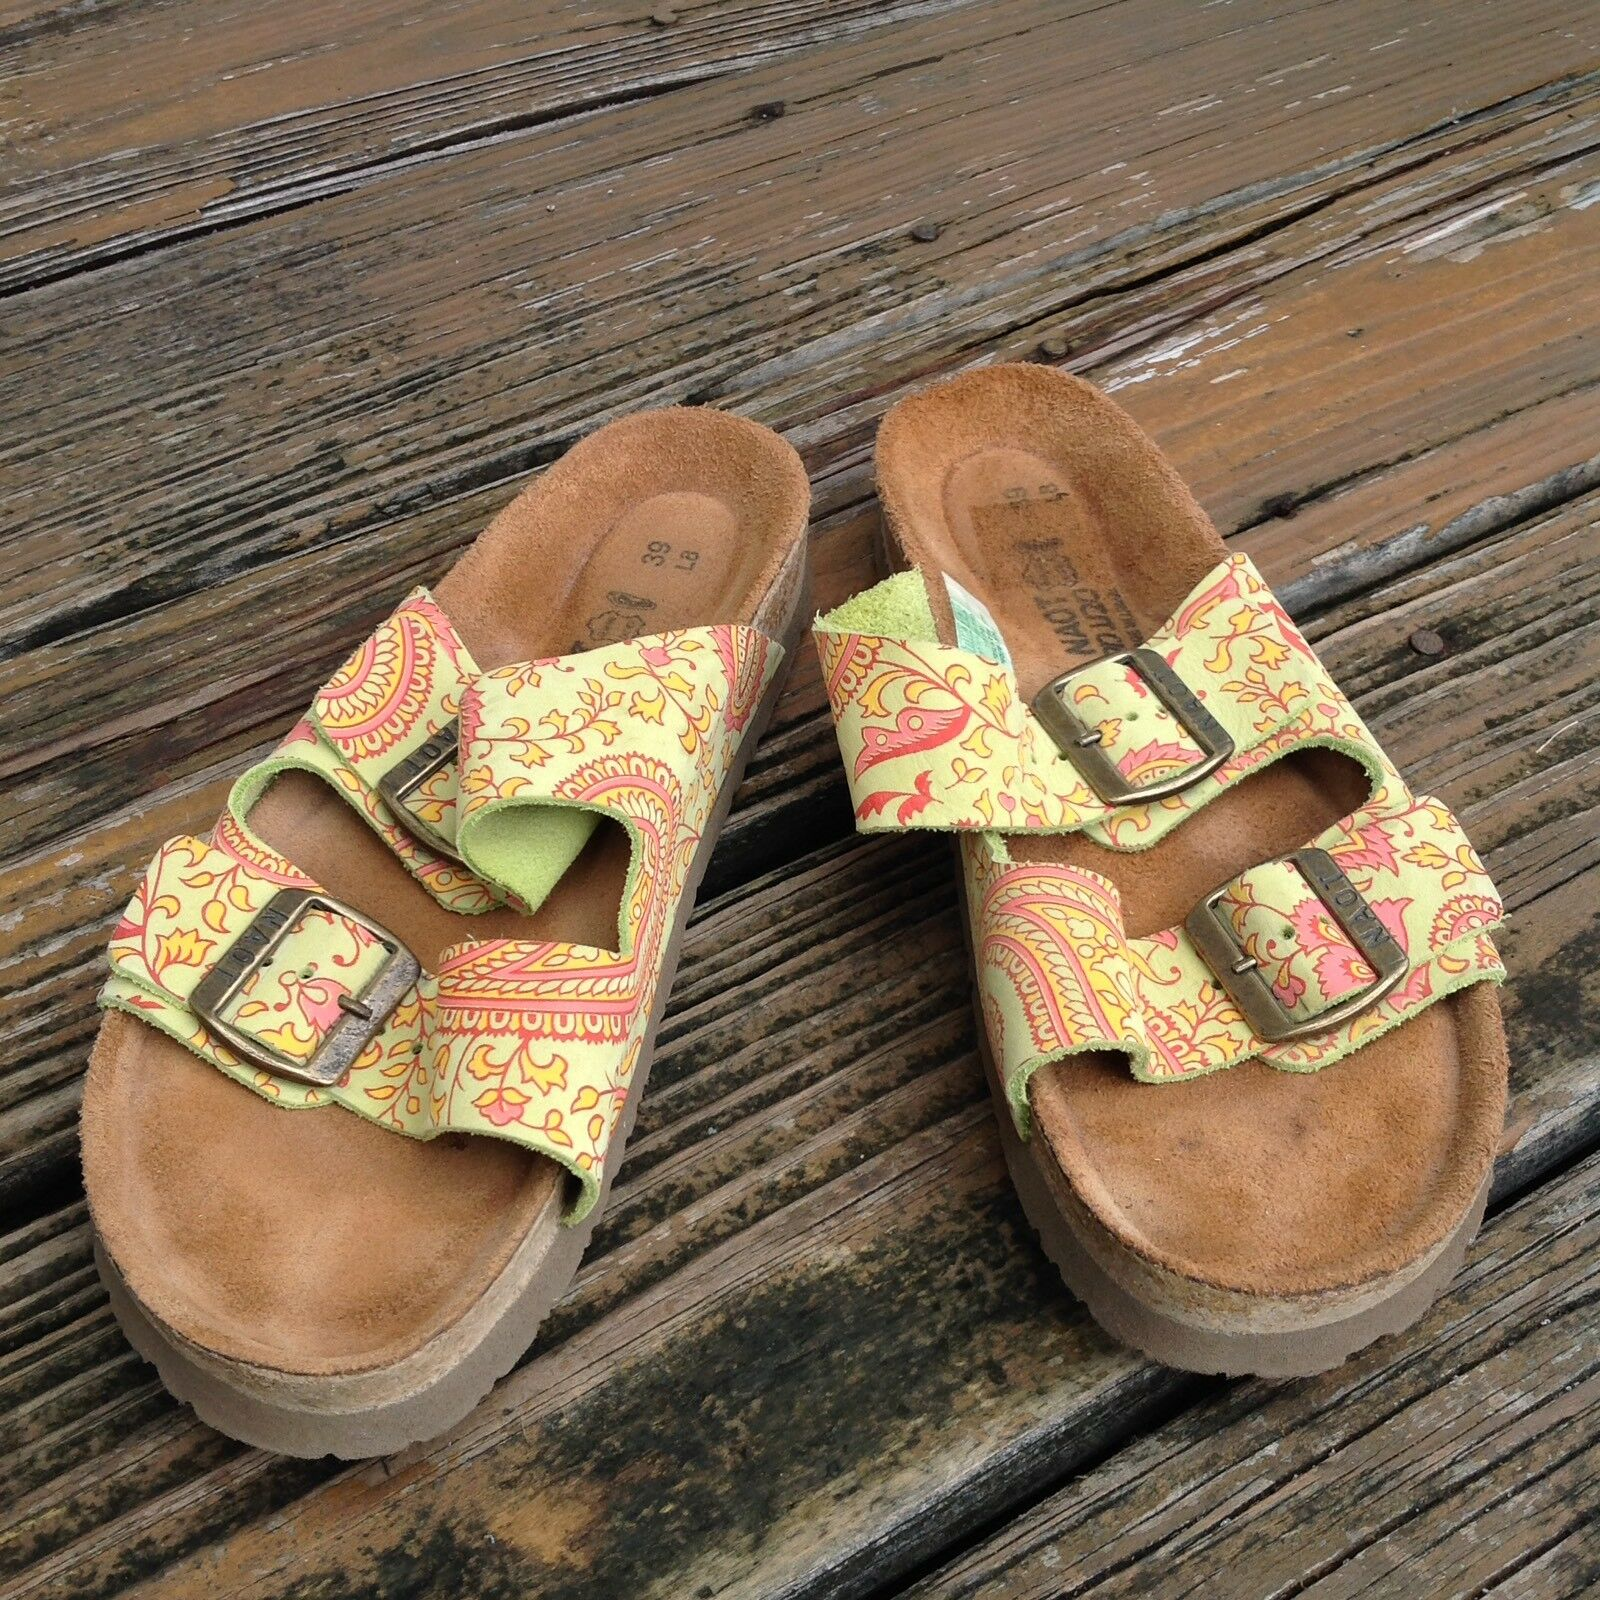 Naot Pink Yellow Green Floral Leather Sz Slip On Sandals Womens Sz Leather 8 EU 39 Shoes 99bbe8